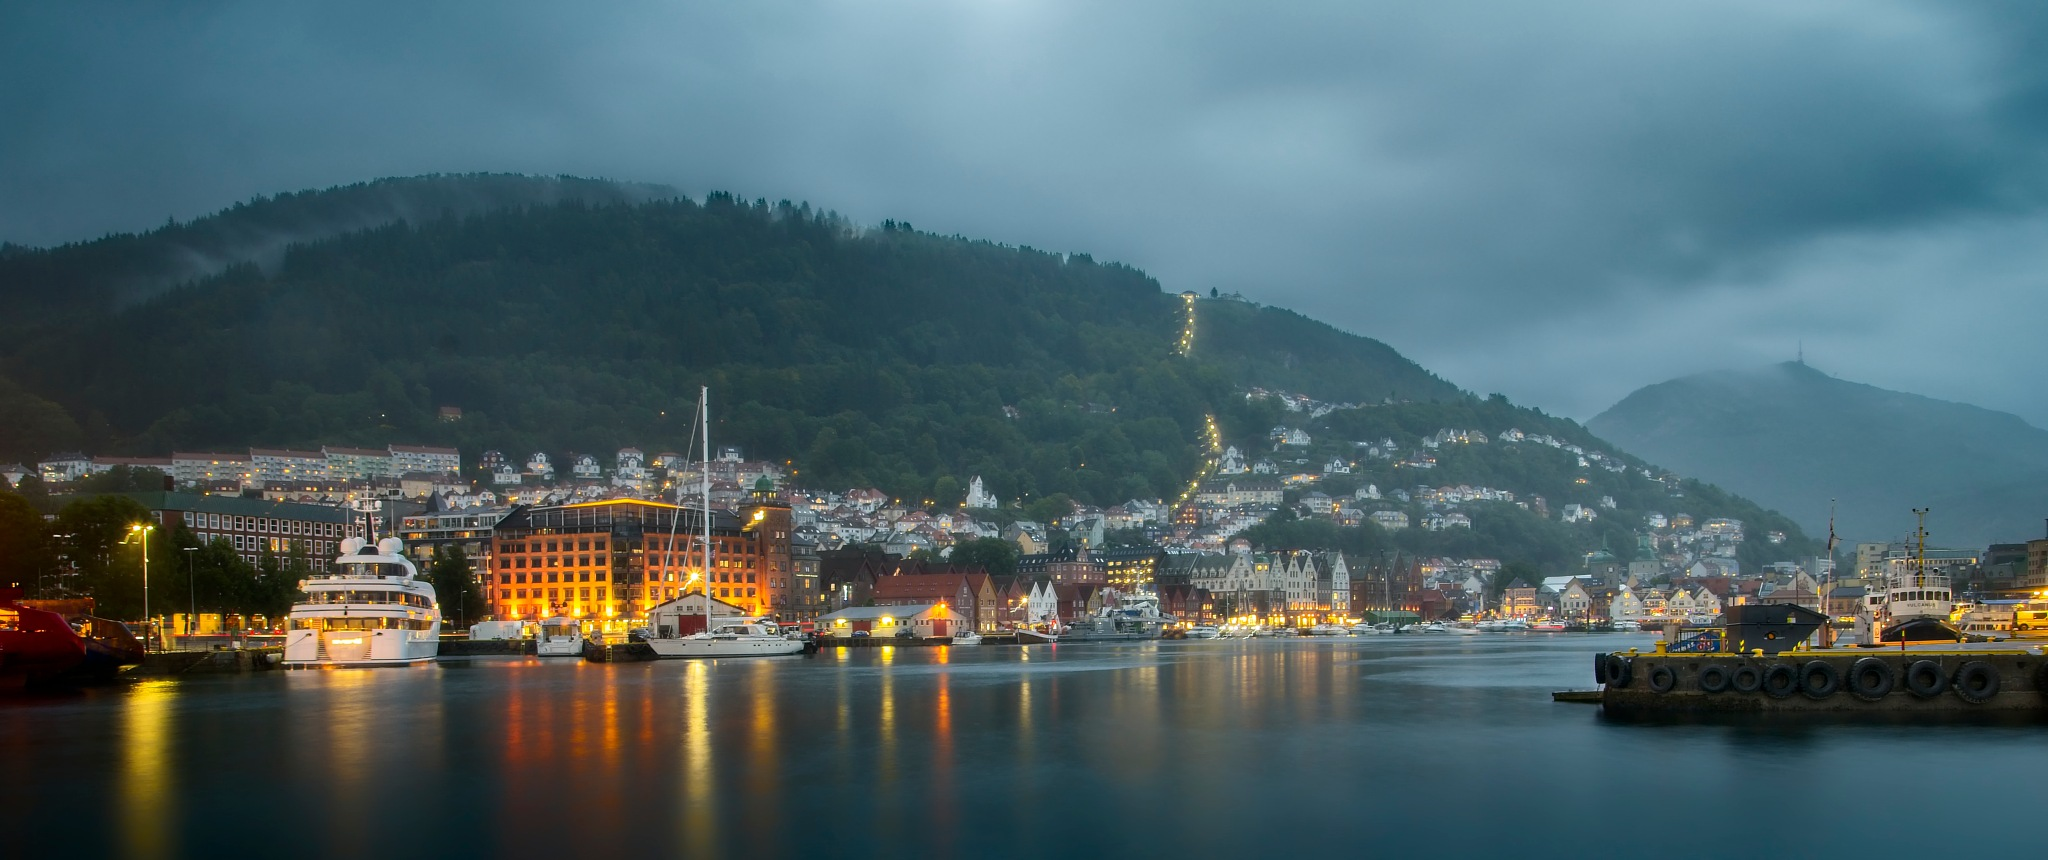 Bergen by Night by Keith Page